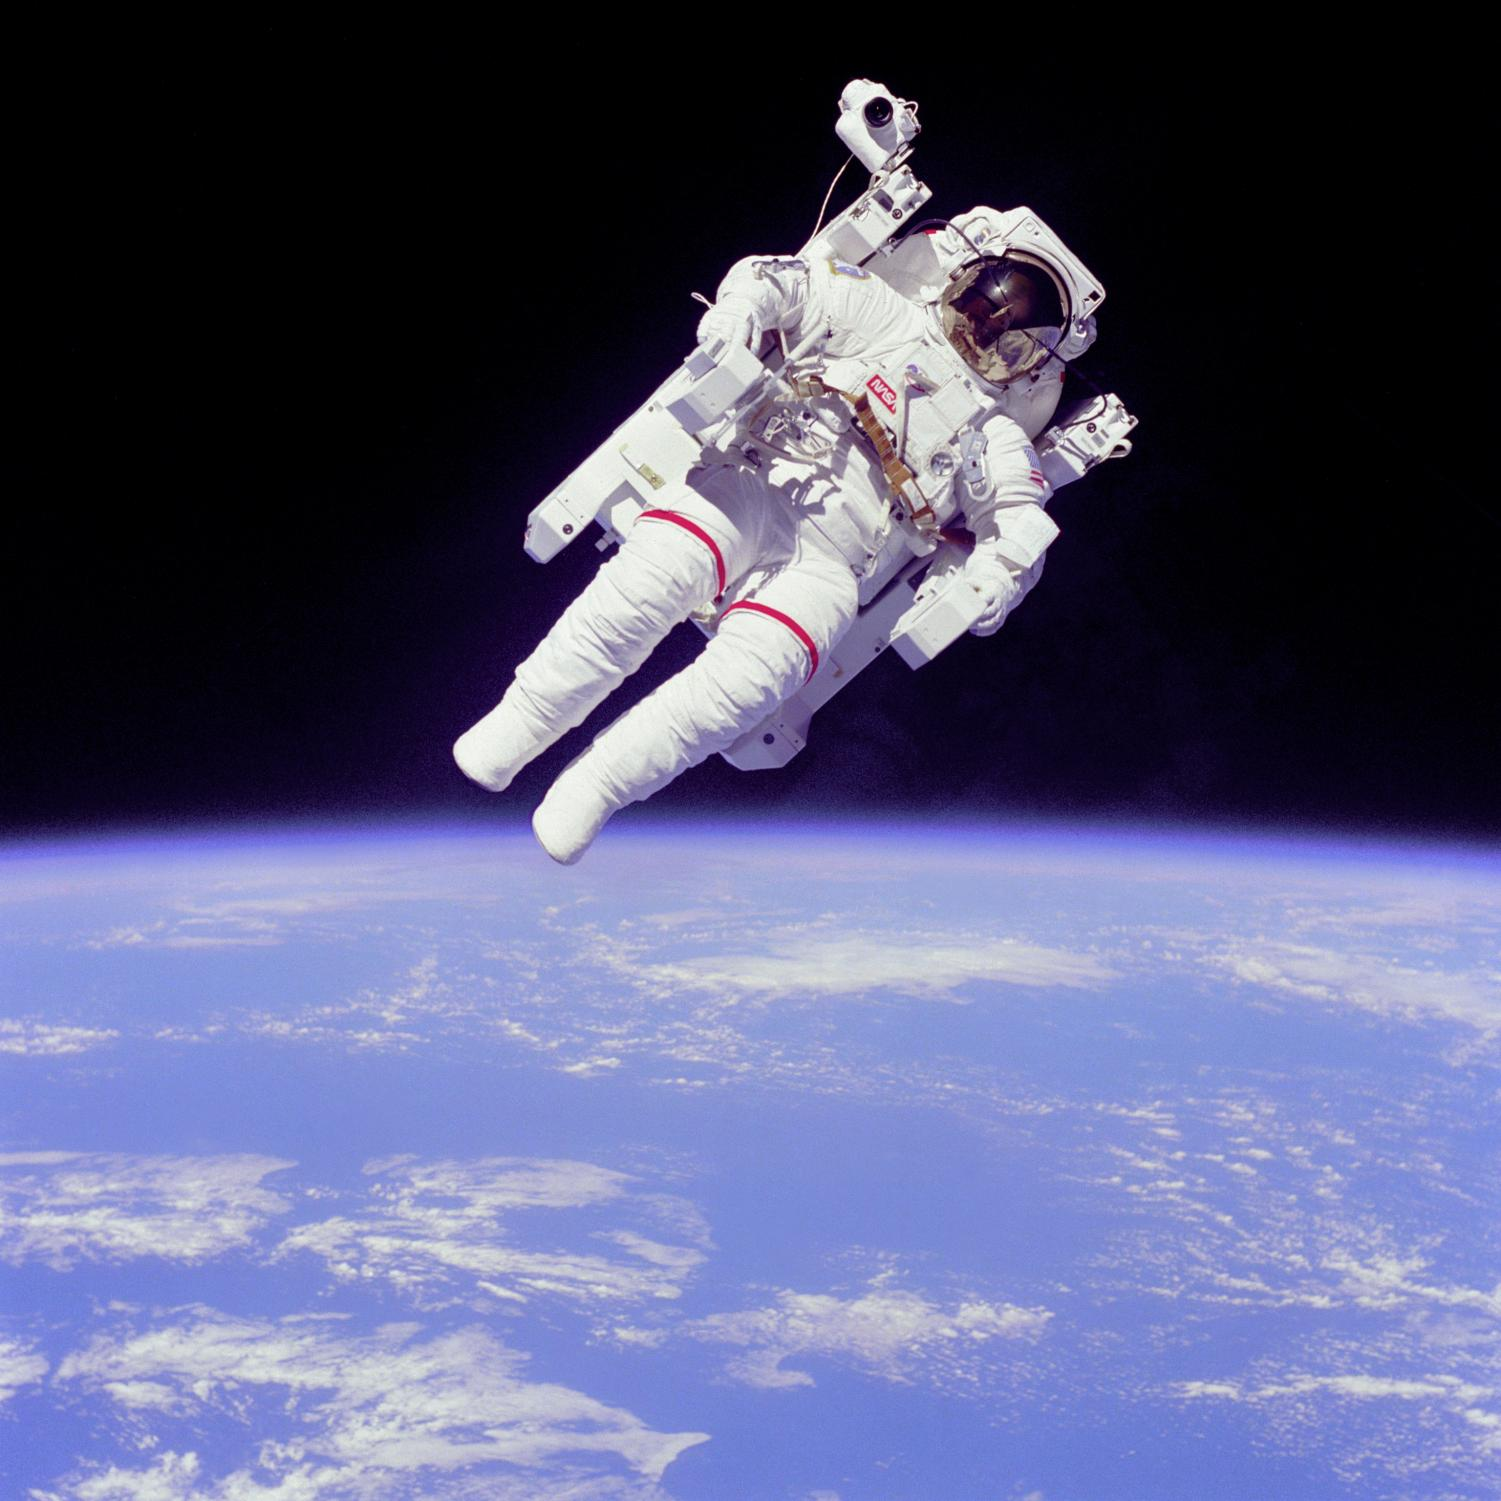 Astronauts are trained to be space professionals